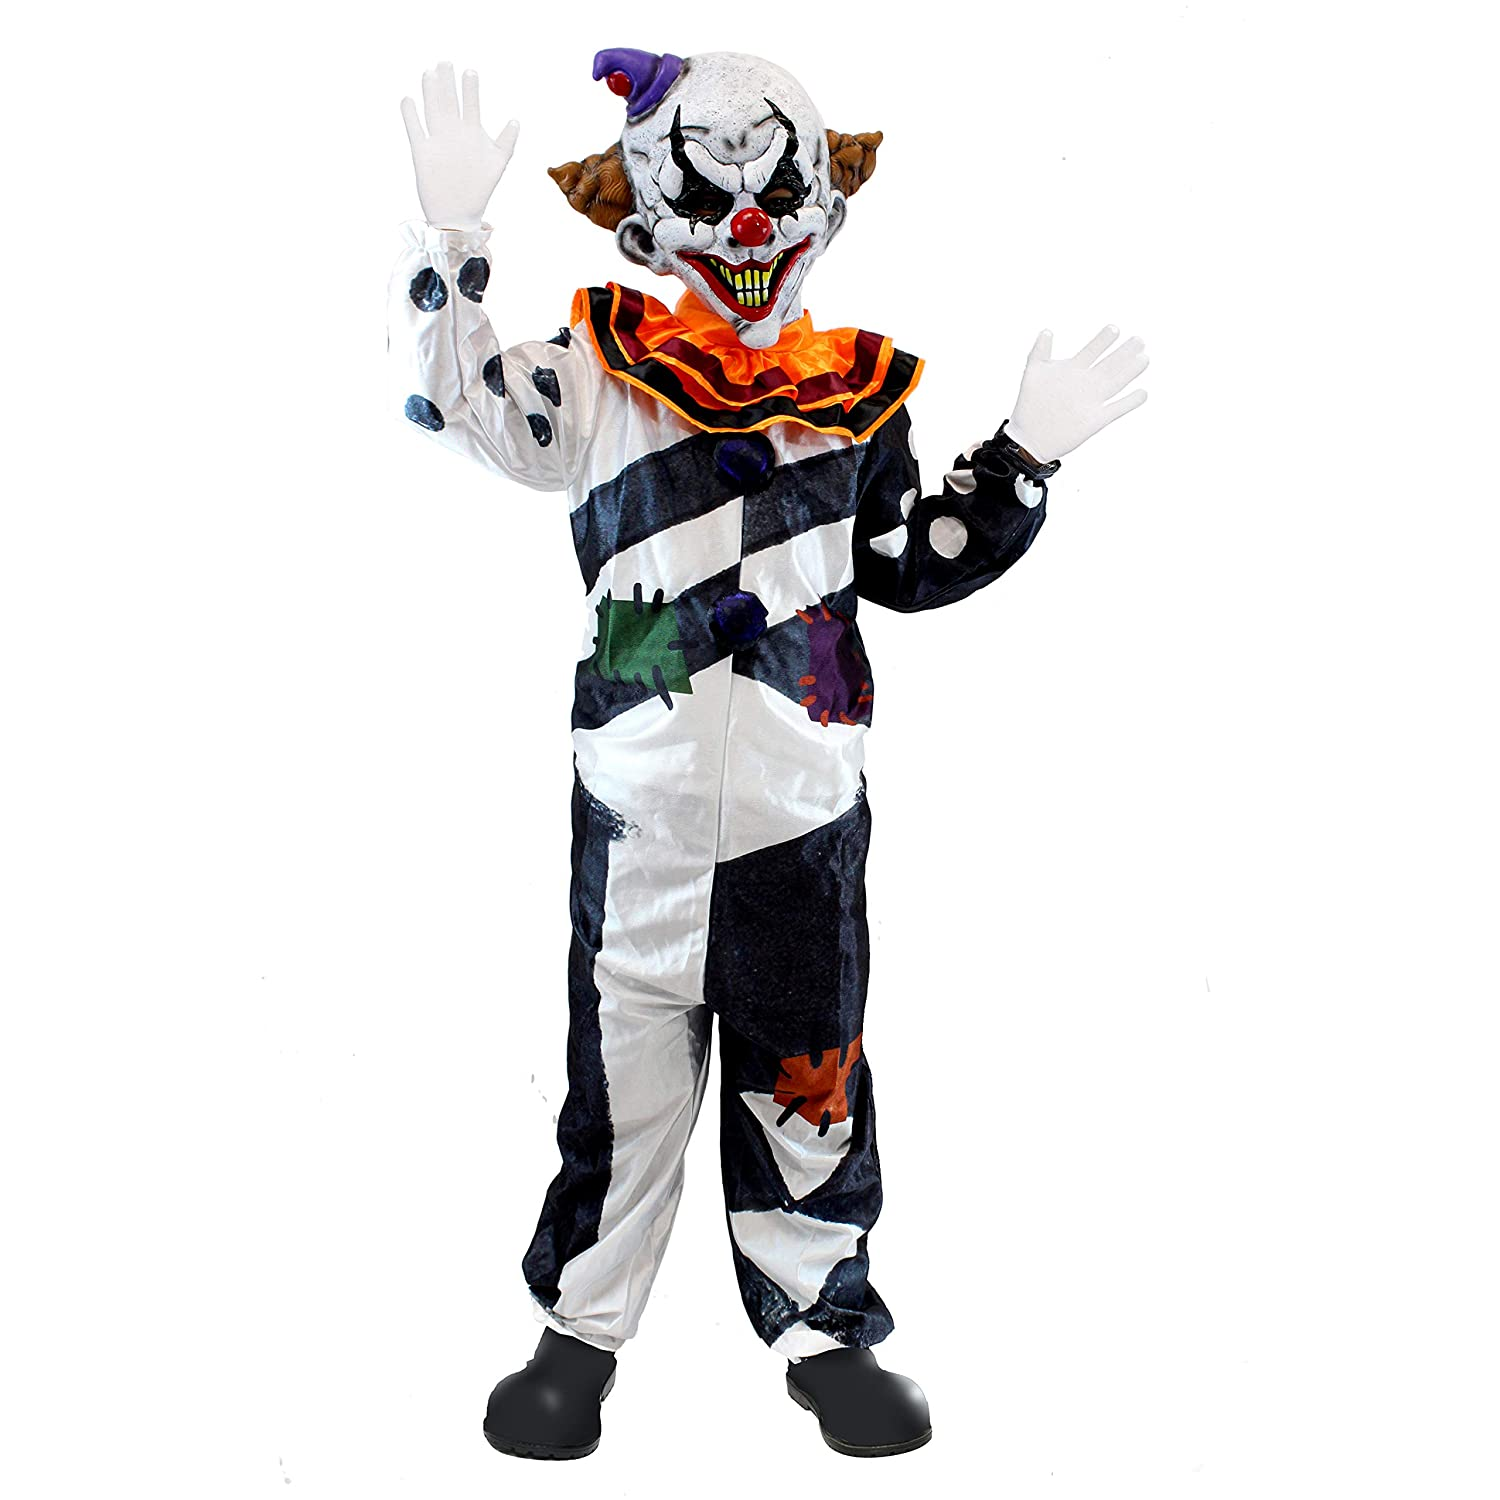 Scary Clown Halloween Costume.Scary Clown Costume Kids Deluxe Set For Halloween Dress Up Party Role Play And Carnival Cosplay